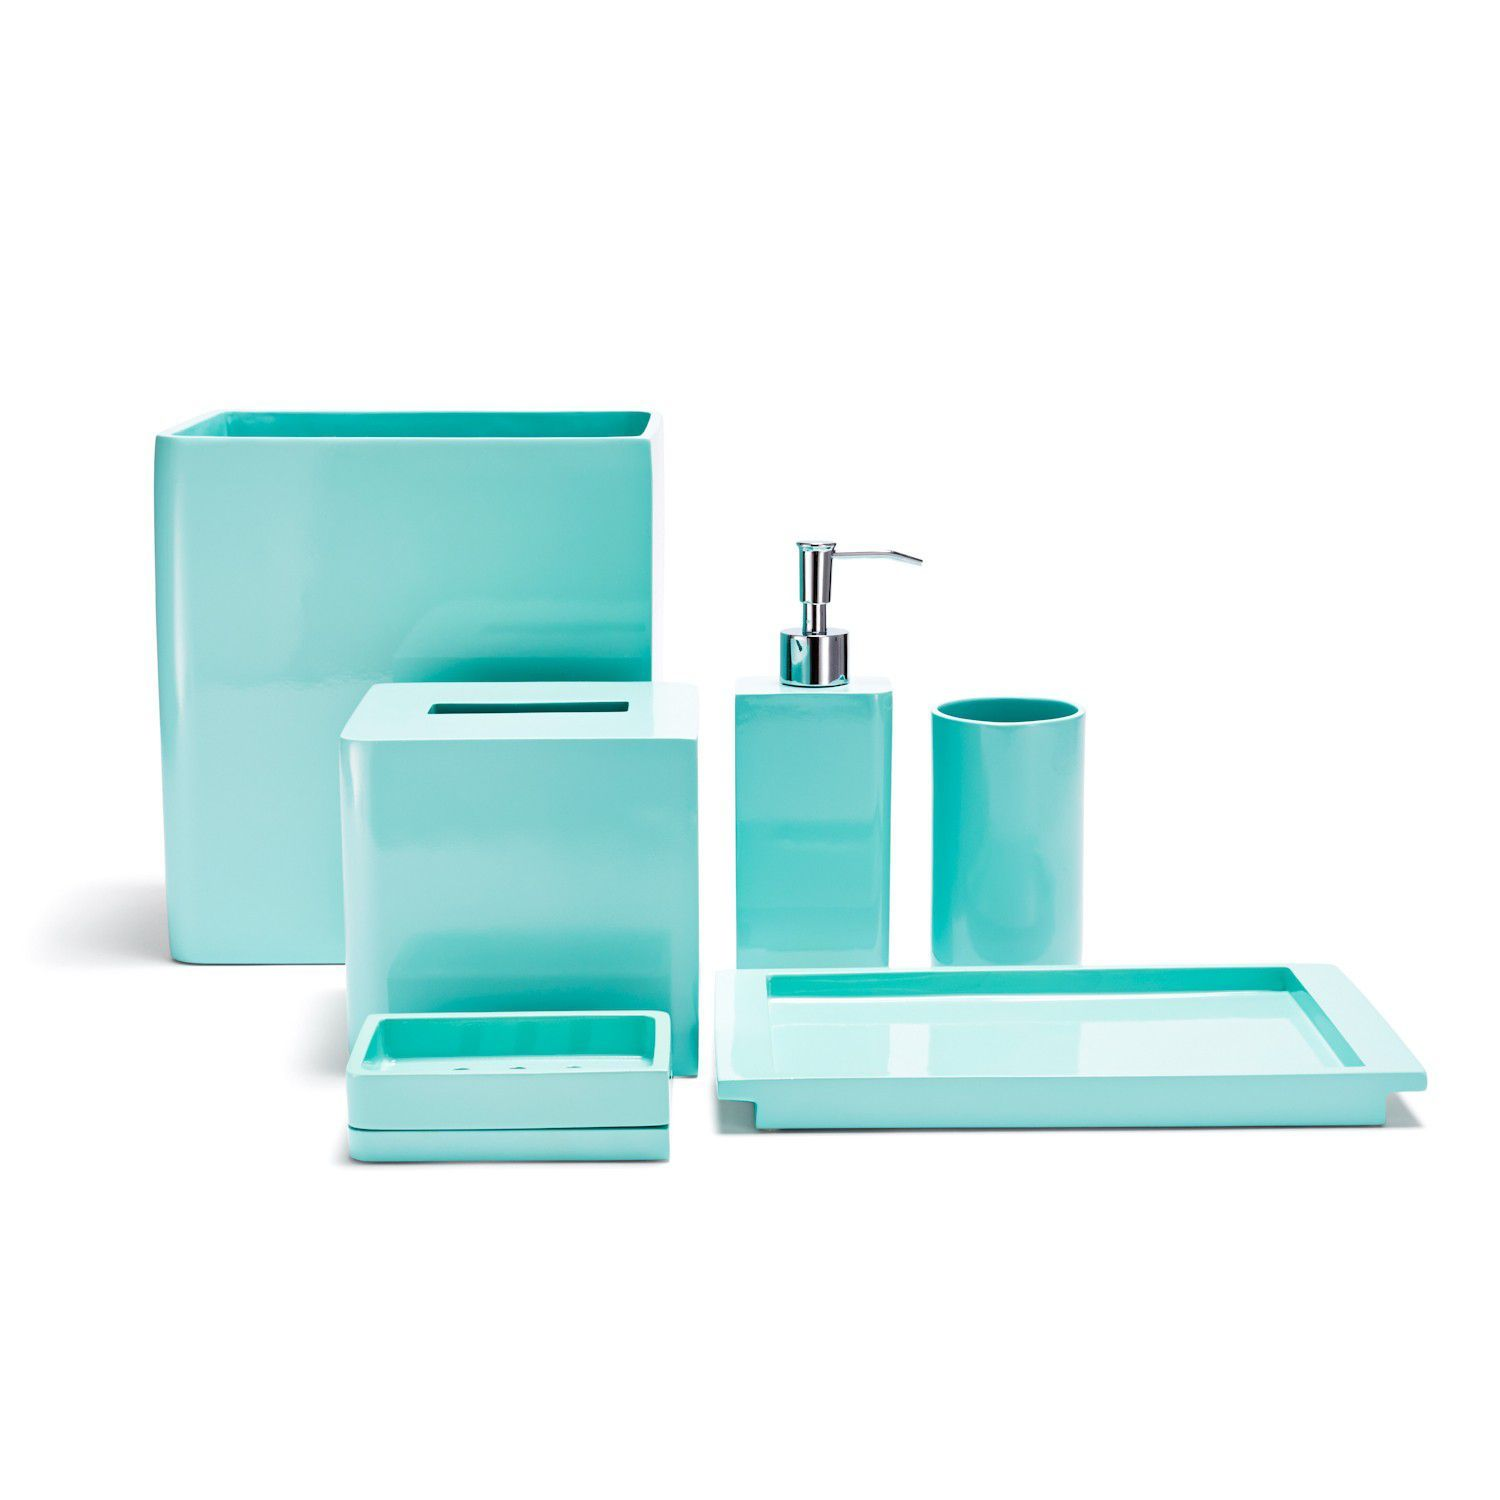 Bright Coloured Bathroom Accessories Http Viralom 071446 1533